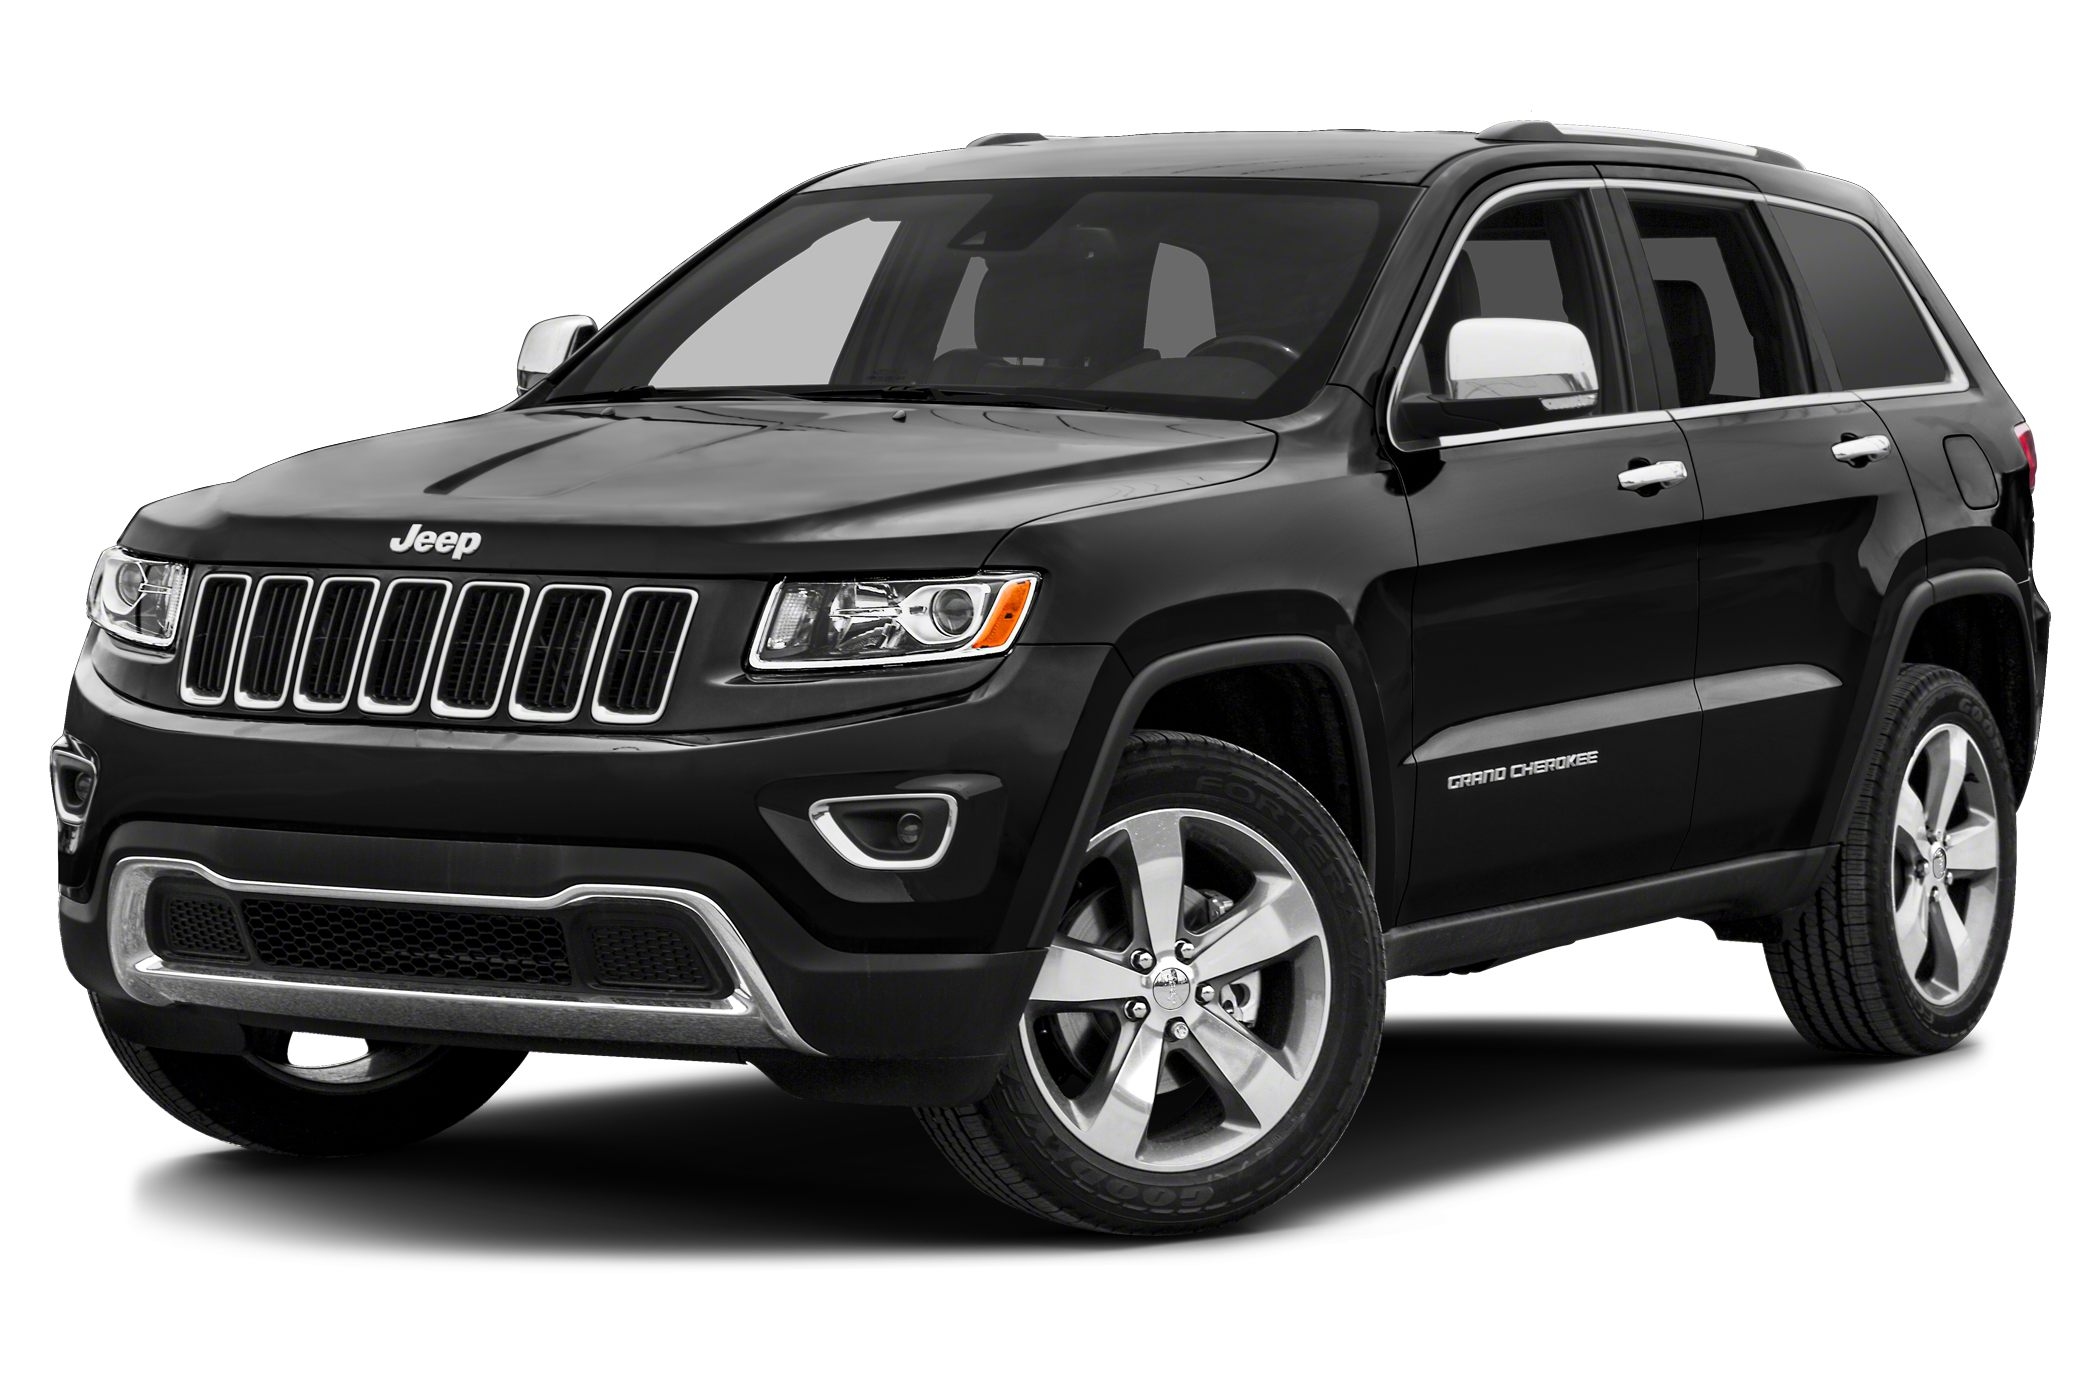 2015 Jeep Grand Cherokee Limited SUV for sale in Burlington for $40,685 with 0 miles.